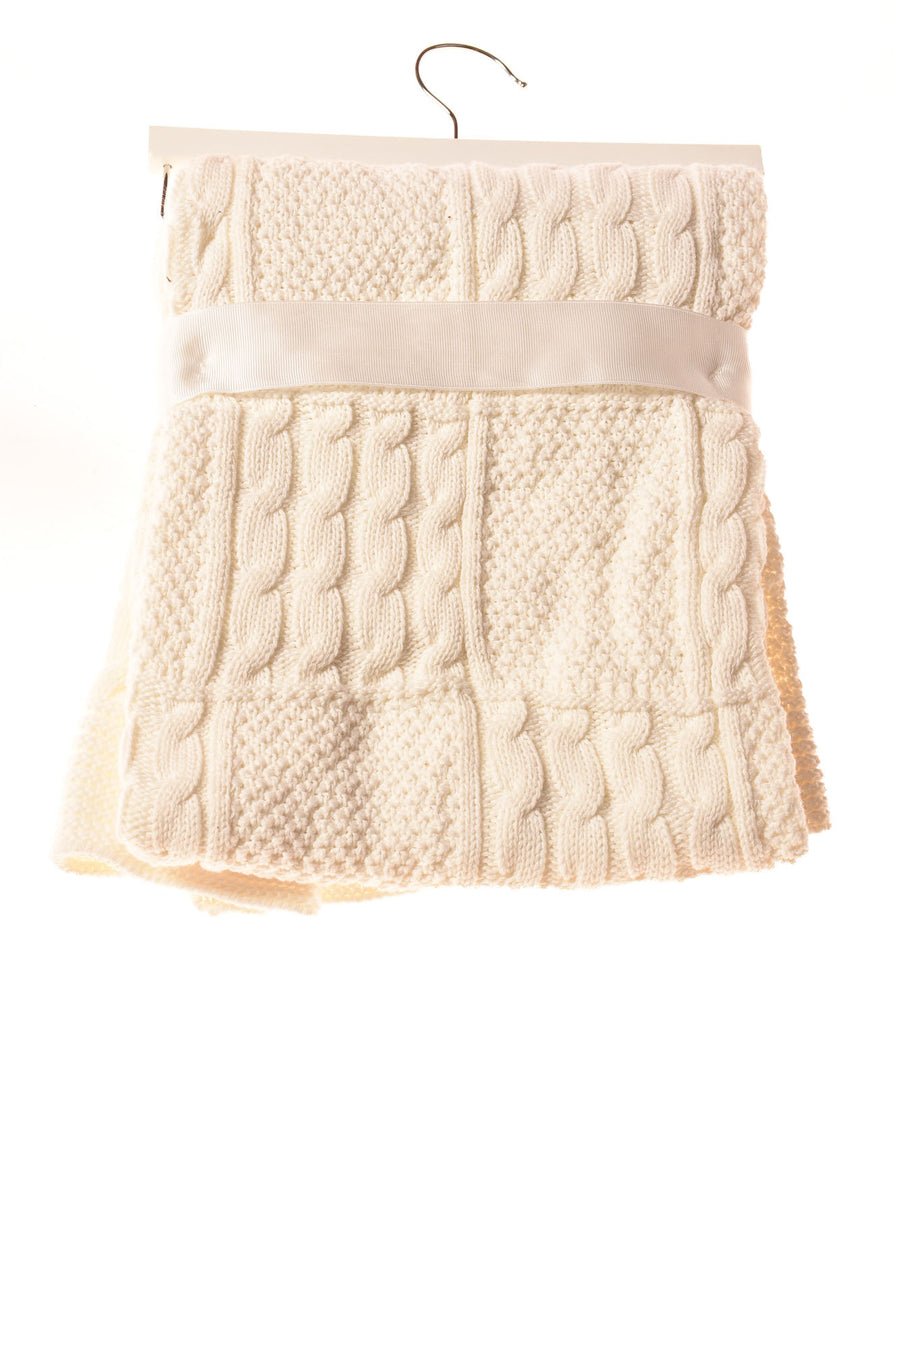 Baby Blanket By Manhattan Kids